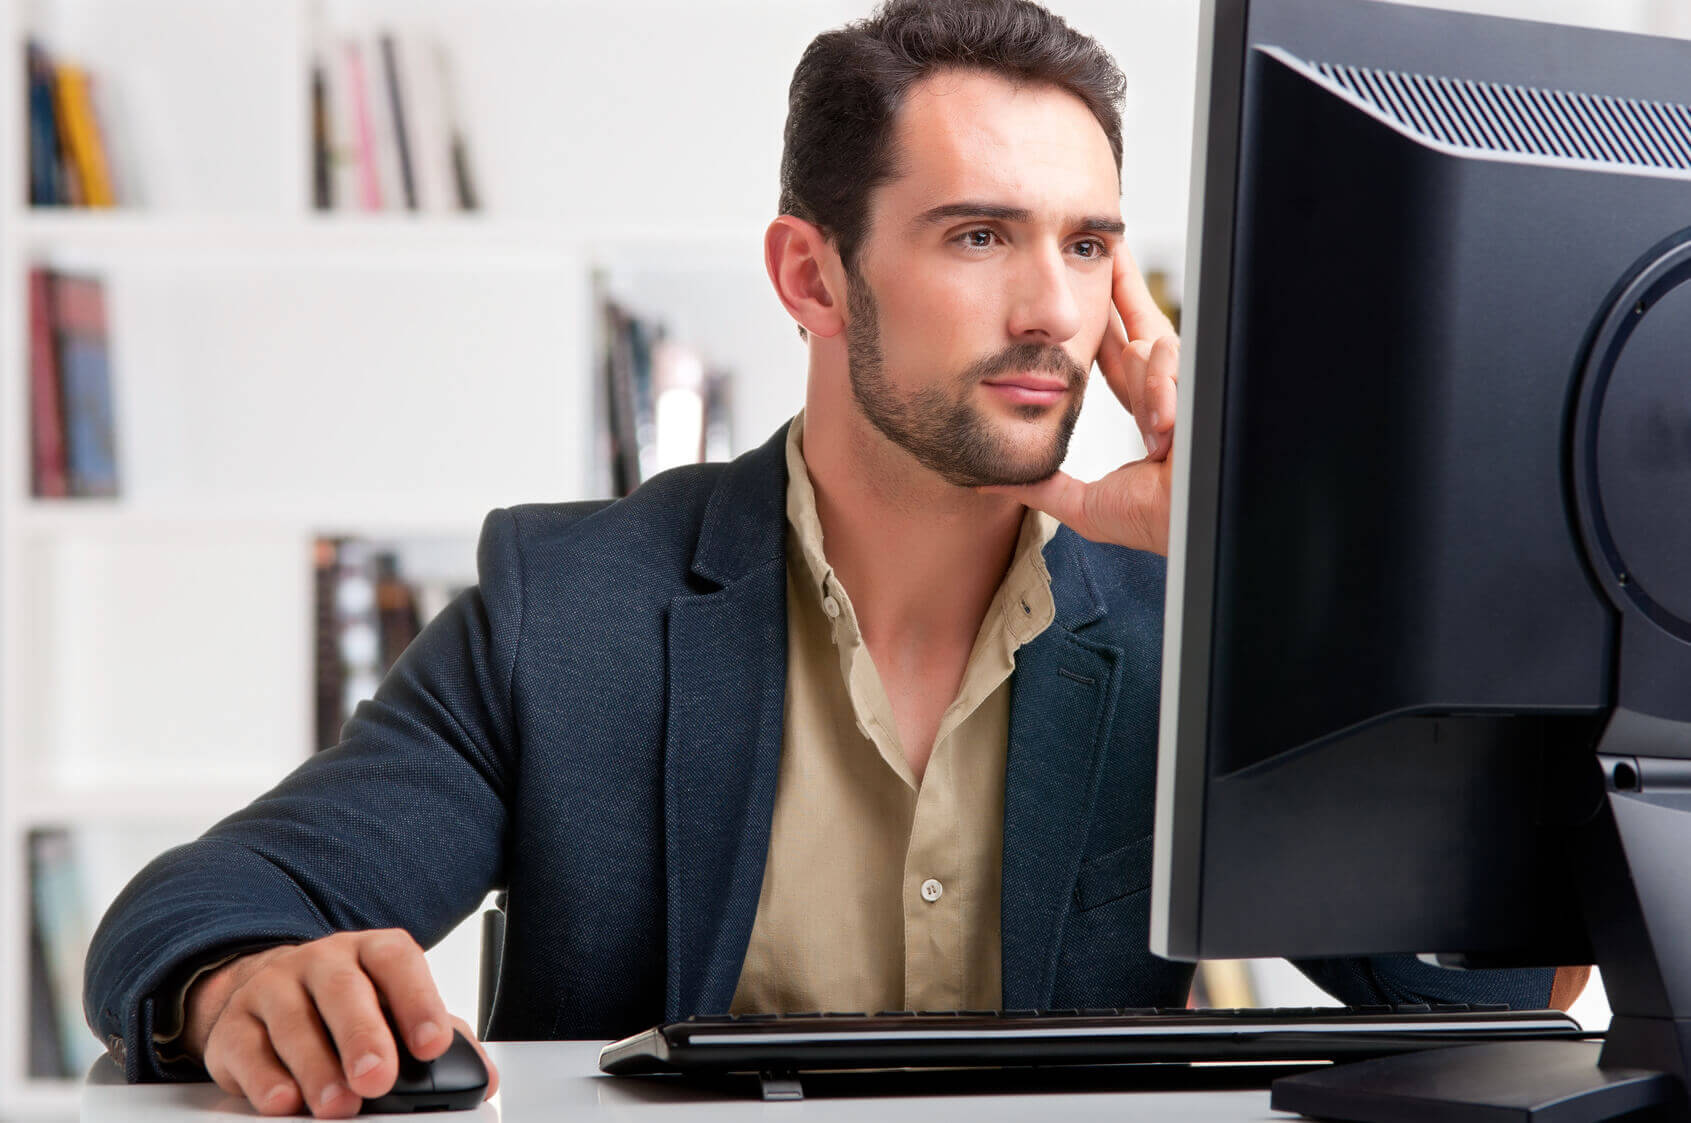 man staring at a computer screen possibly reading an email before booking a hotel